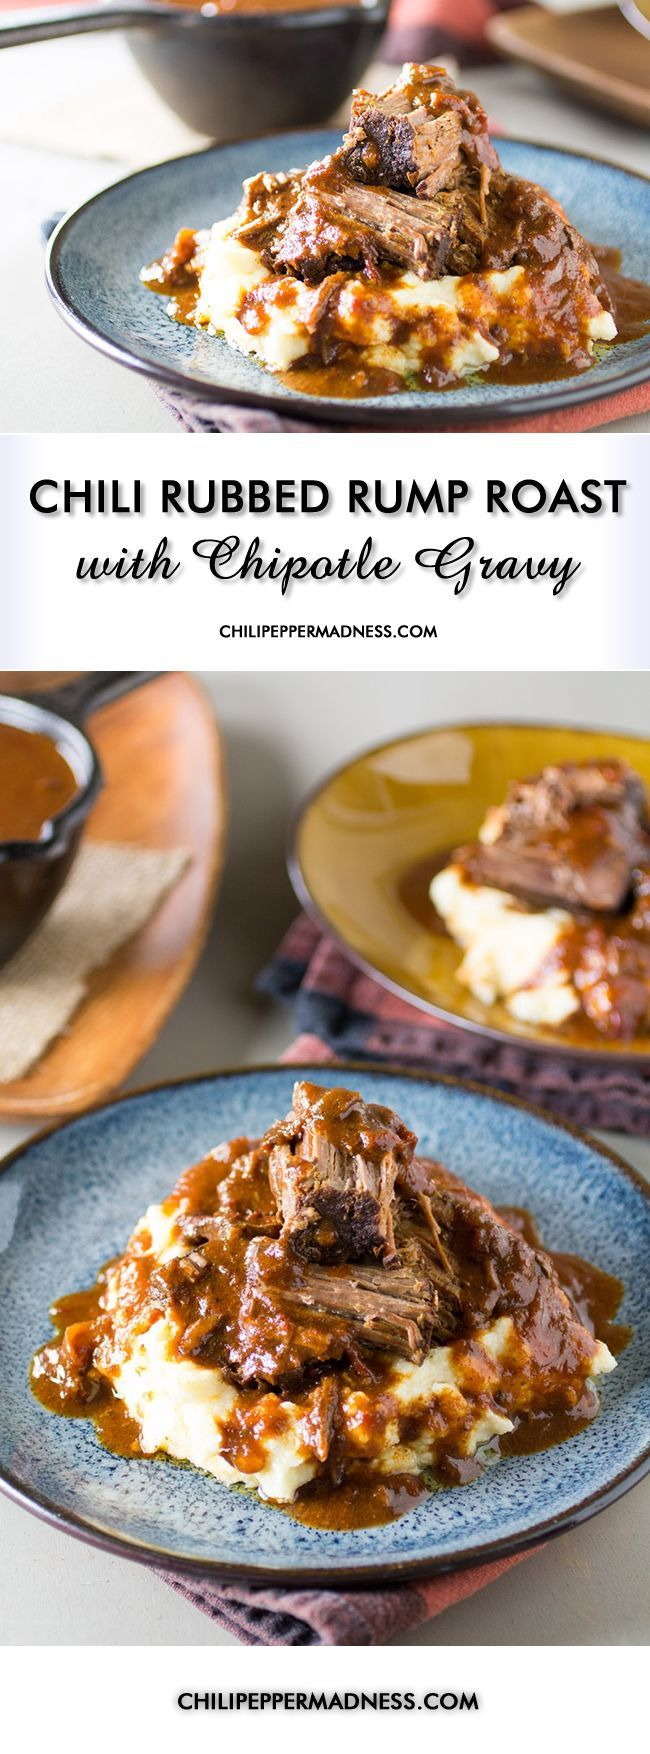 Chili Rubbed Rump Roast with Chipotle Gravy - A recipe for rump roast rubbed with a rich spicy chili blend then slow cooked and served with homemade chipotle gravy. We're talking comfort food at its finest. Seriously. Chipotle Gravy! Don't forget the Cheesy Garlic Mashed Potatoes.